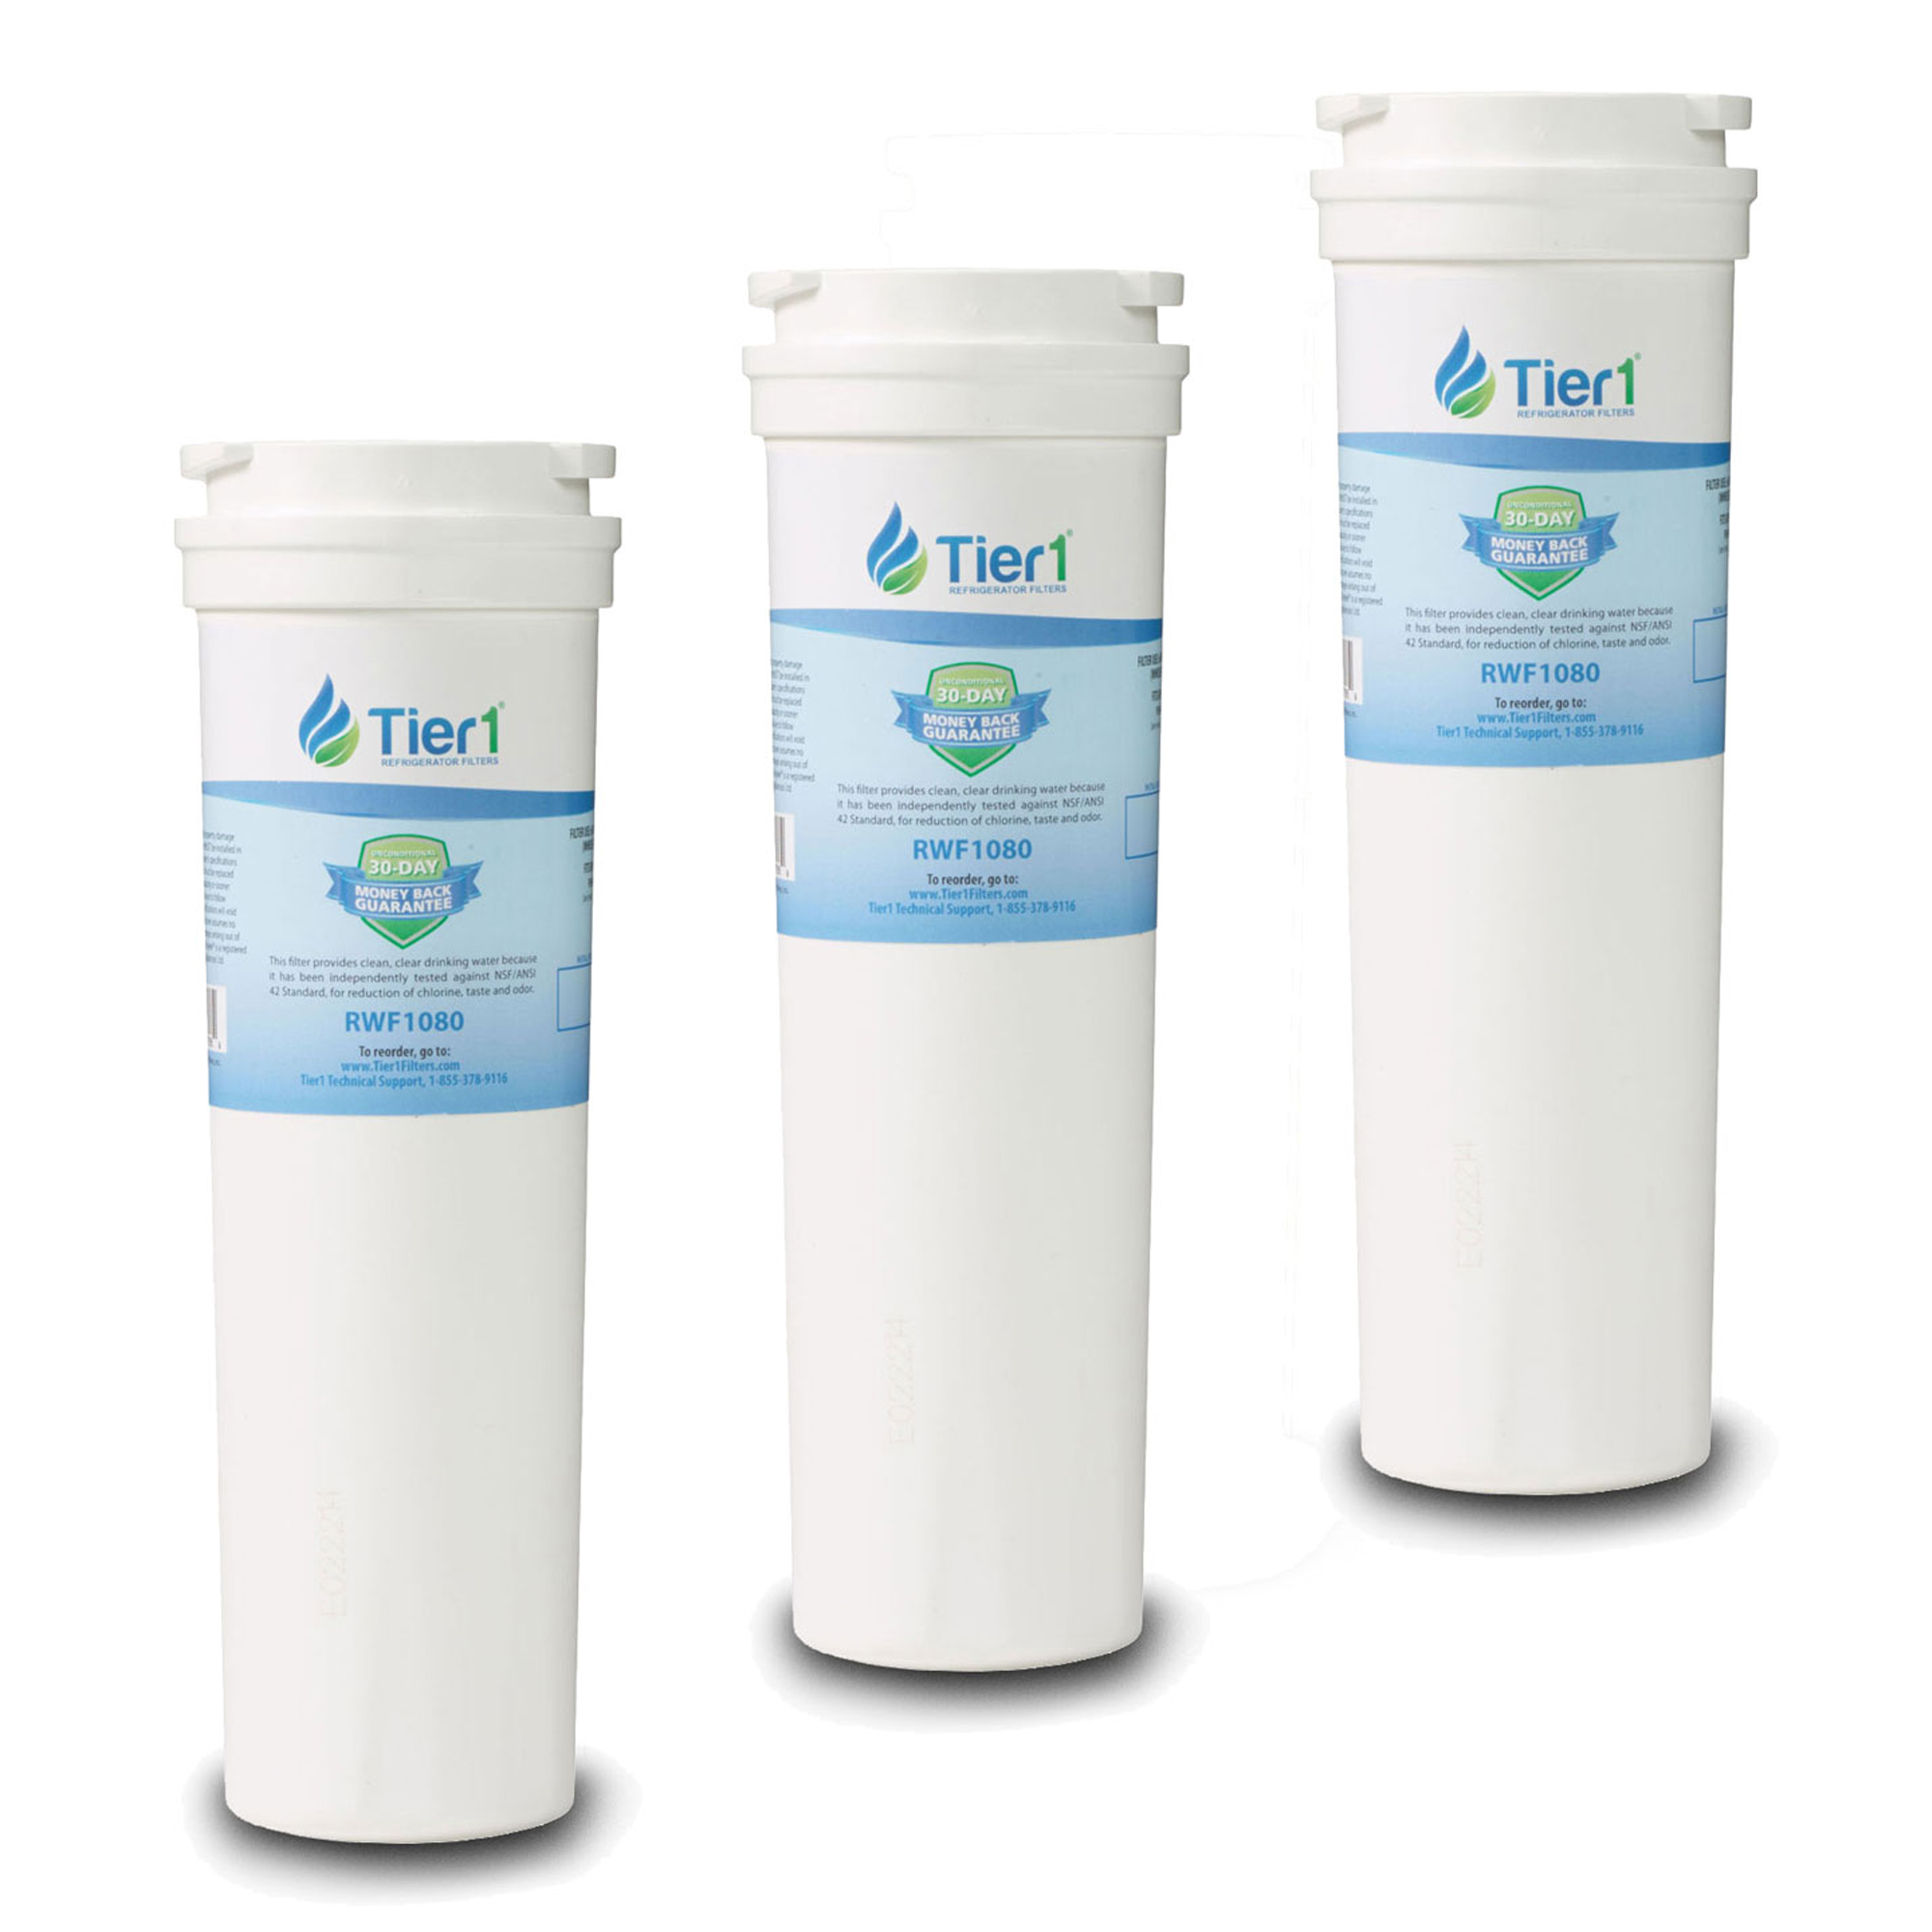 67003662 Fisher & Paykel Replacement Refrigerator Water Filter by Tier1 NFS-67003662_3_PACK